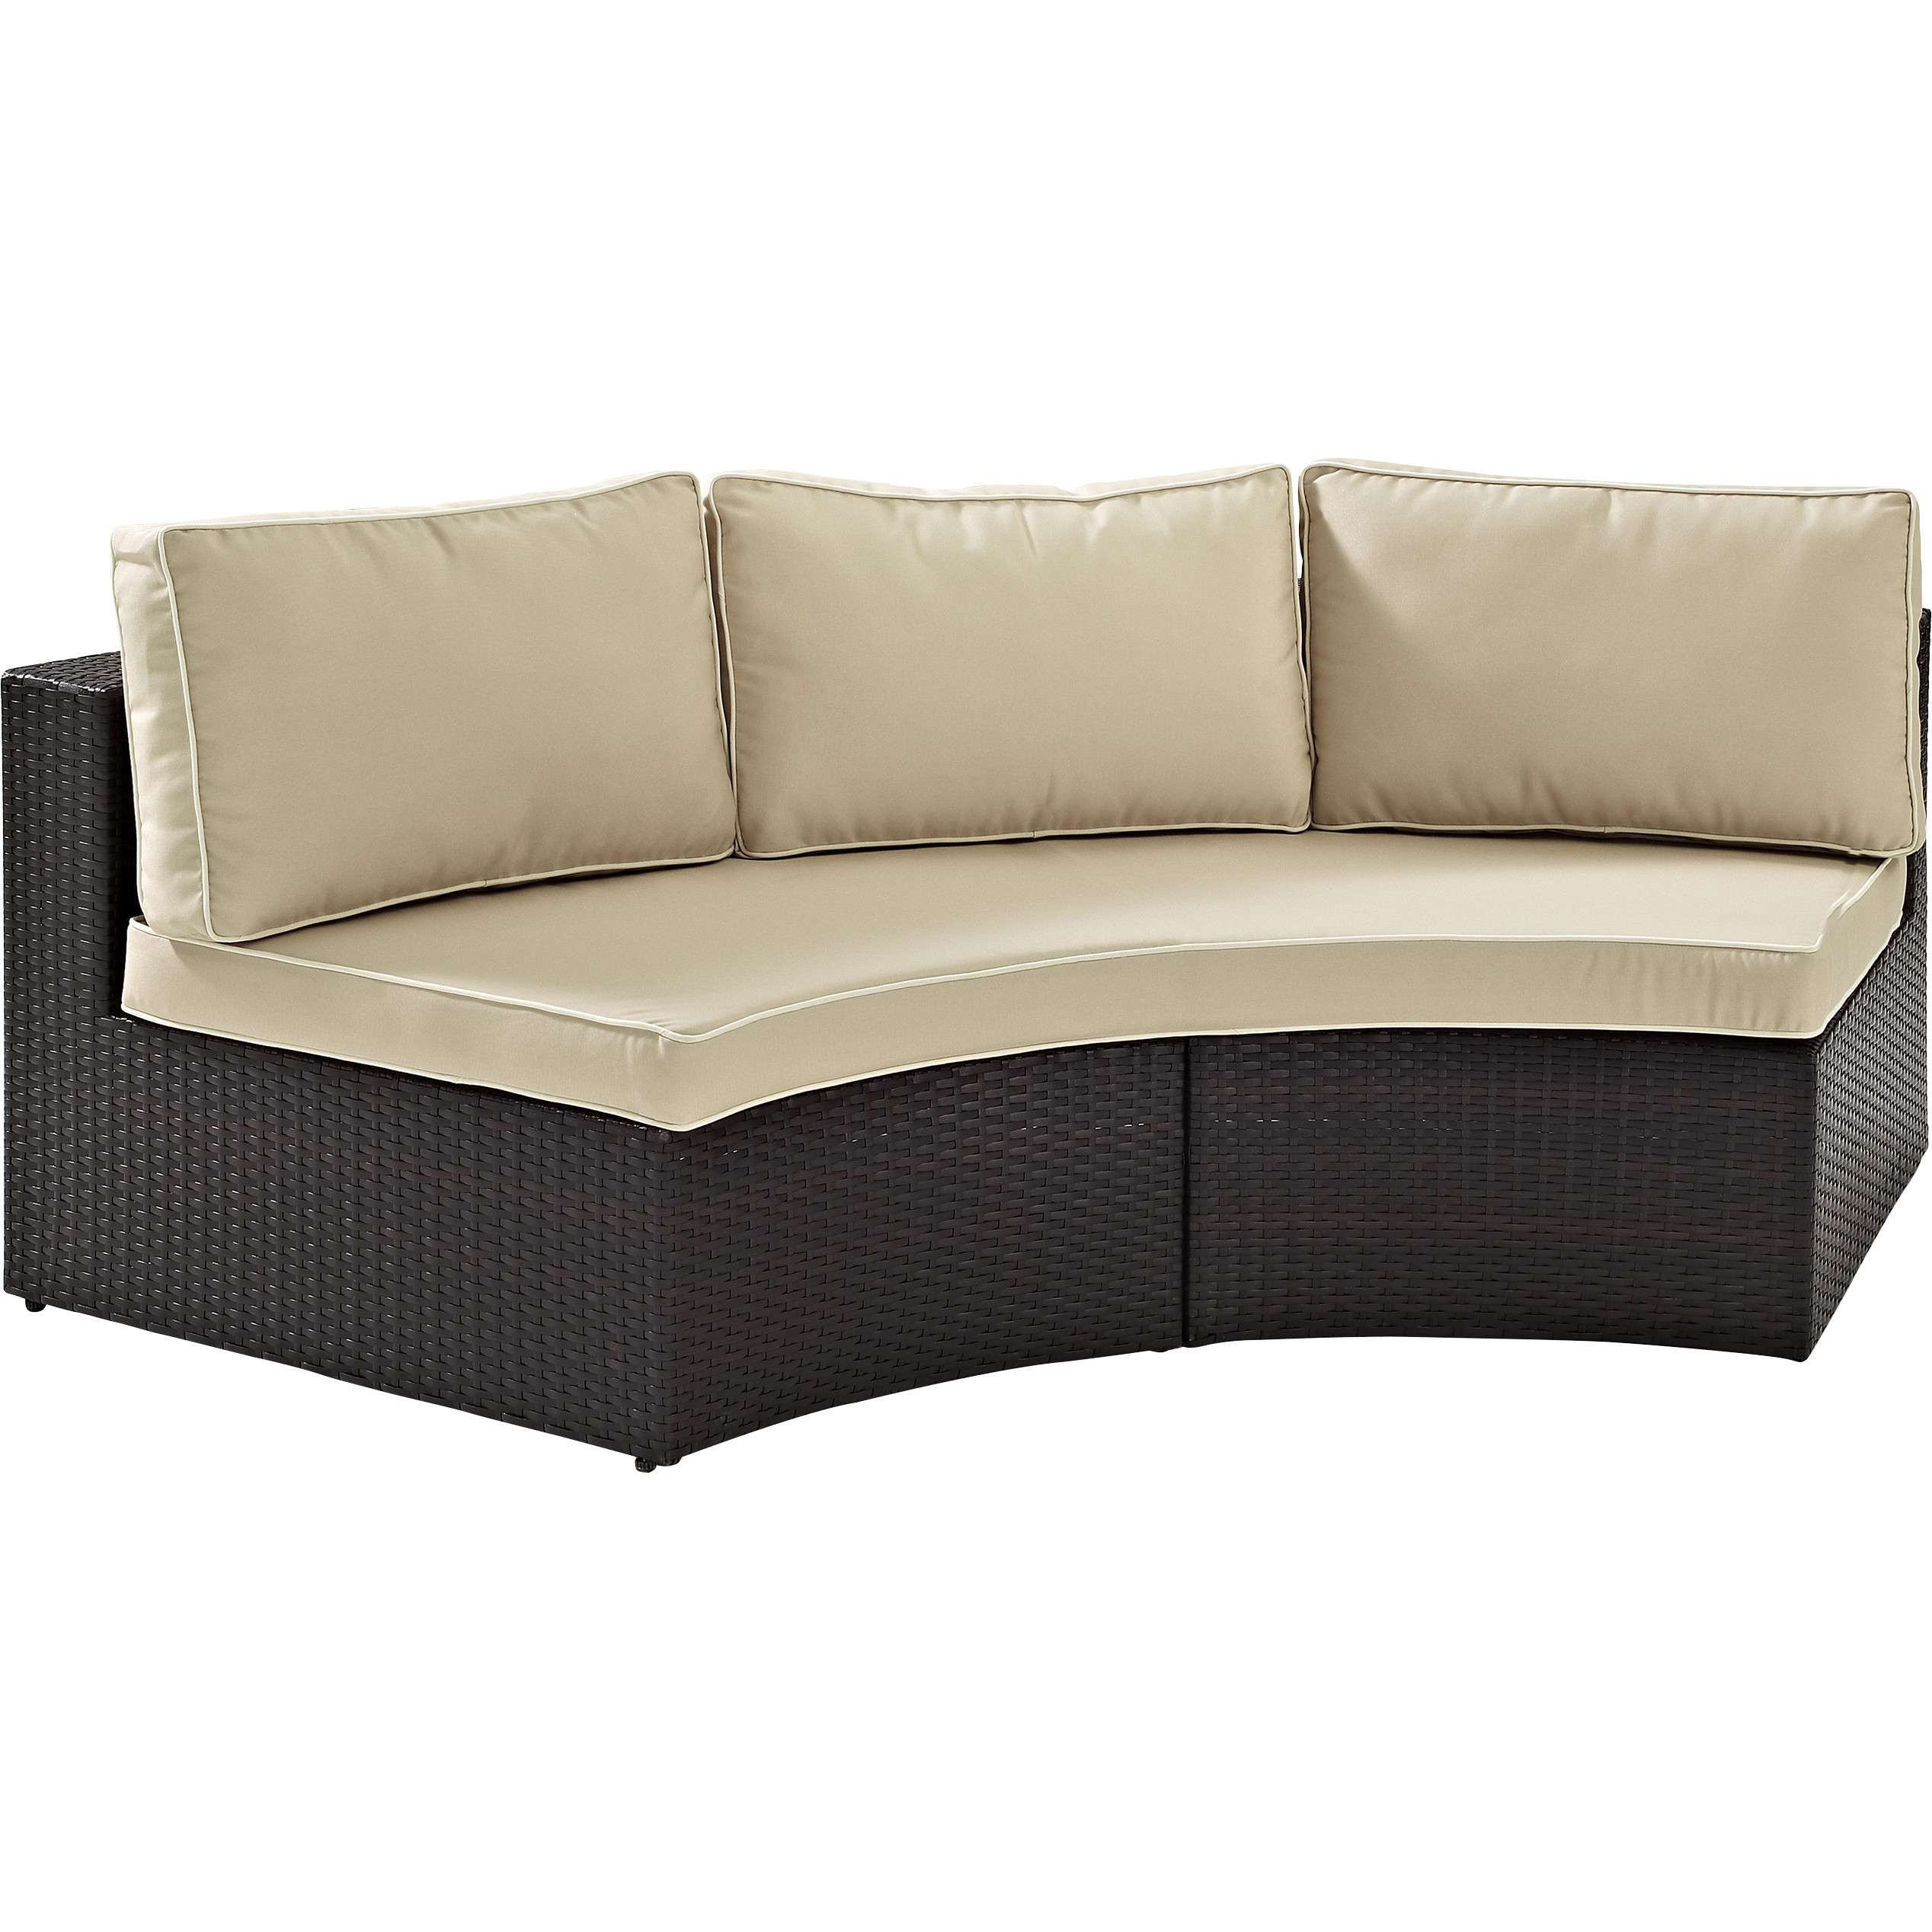 Pier One Wicker Furniture | Patio Furniture Pier One | Pier1 Imports Furniture